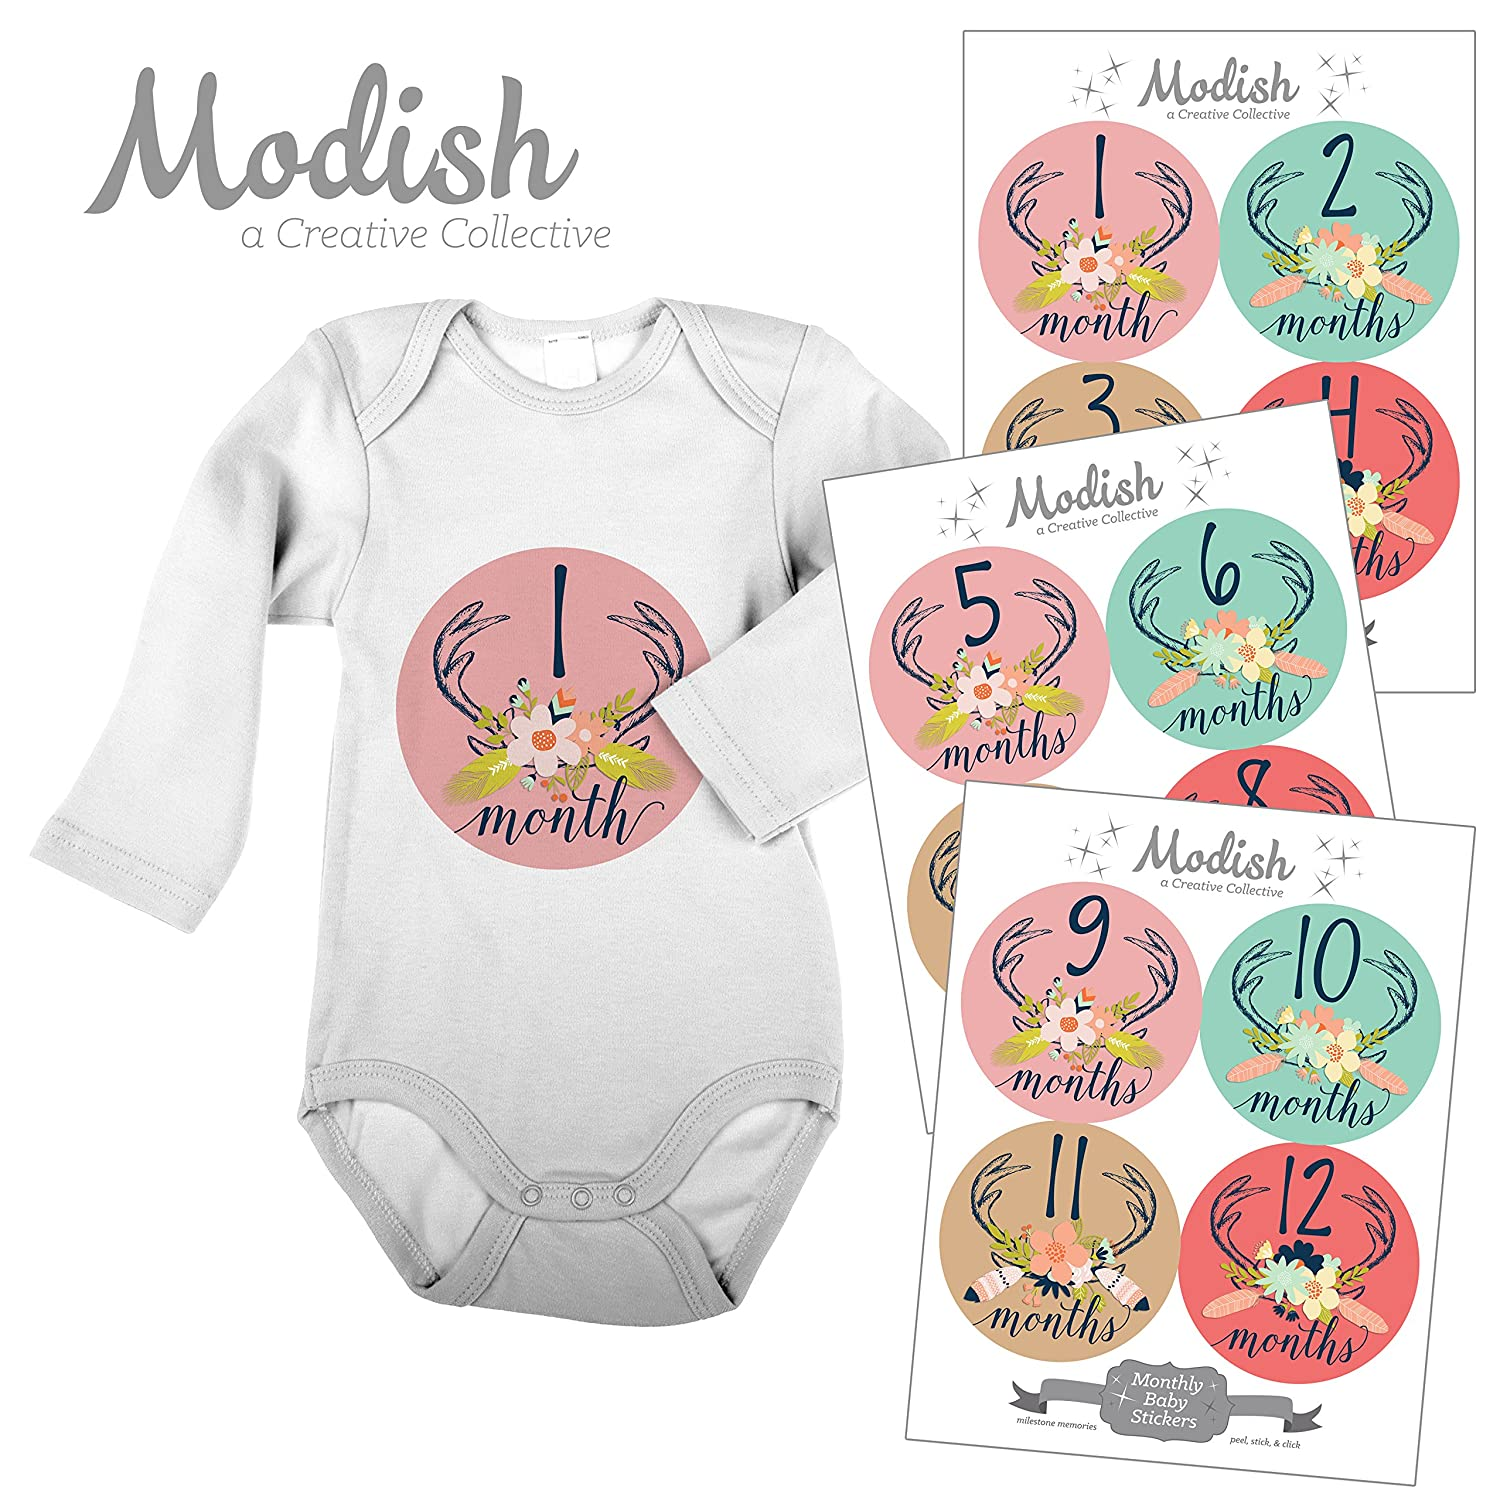 正規品販売! 12 Red, Monthly Girl Baby Stickers, Deer Antlers, Baby Girl, Flowers, Feathers, Baby Belly Stickers, Monthly Onesie Stickers, First Year Stickers Months 1-12, Pink, Rose, Red, Mint, Teal, Beige, Tan, Brown, Navy Blue, Baby Girl by Modish - Creative Collective B00XGXUUOO, パソコンショップ ぱそくる:a8d33640 --- mvd.ee